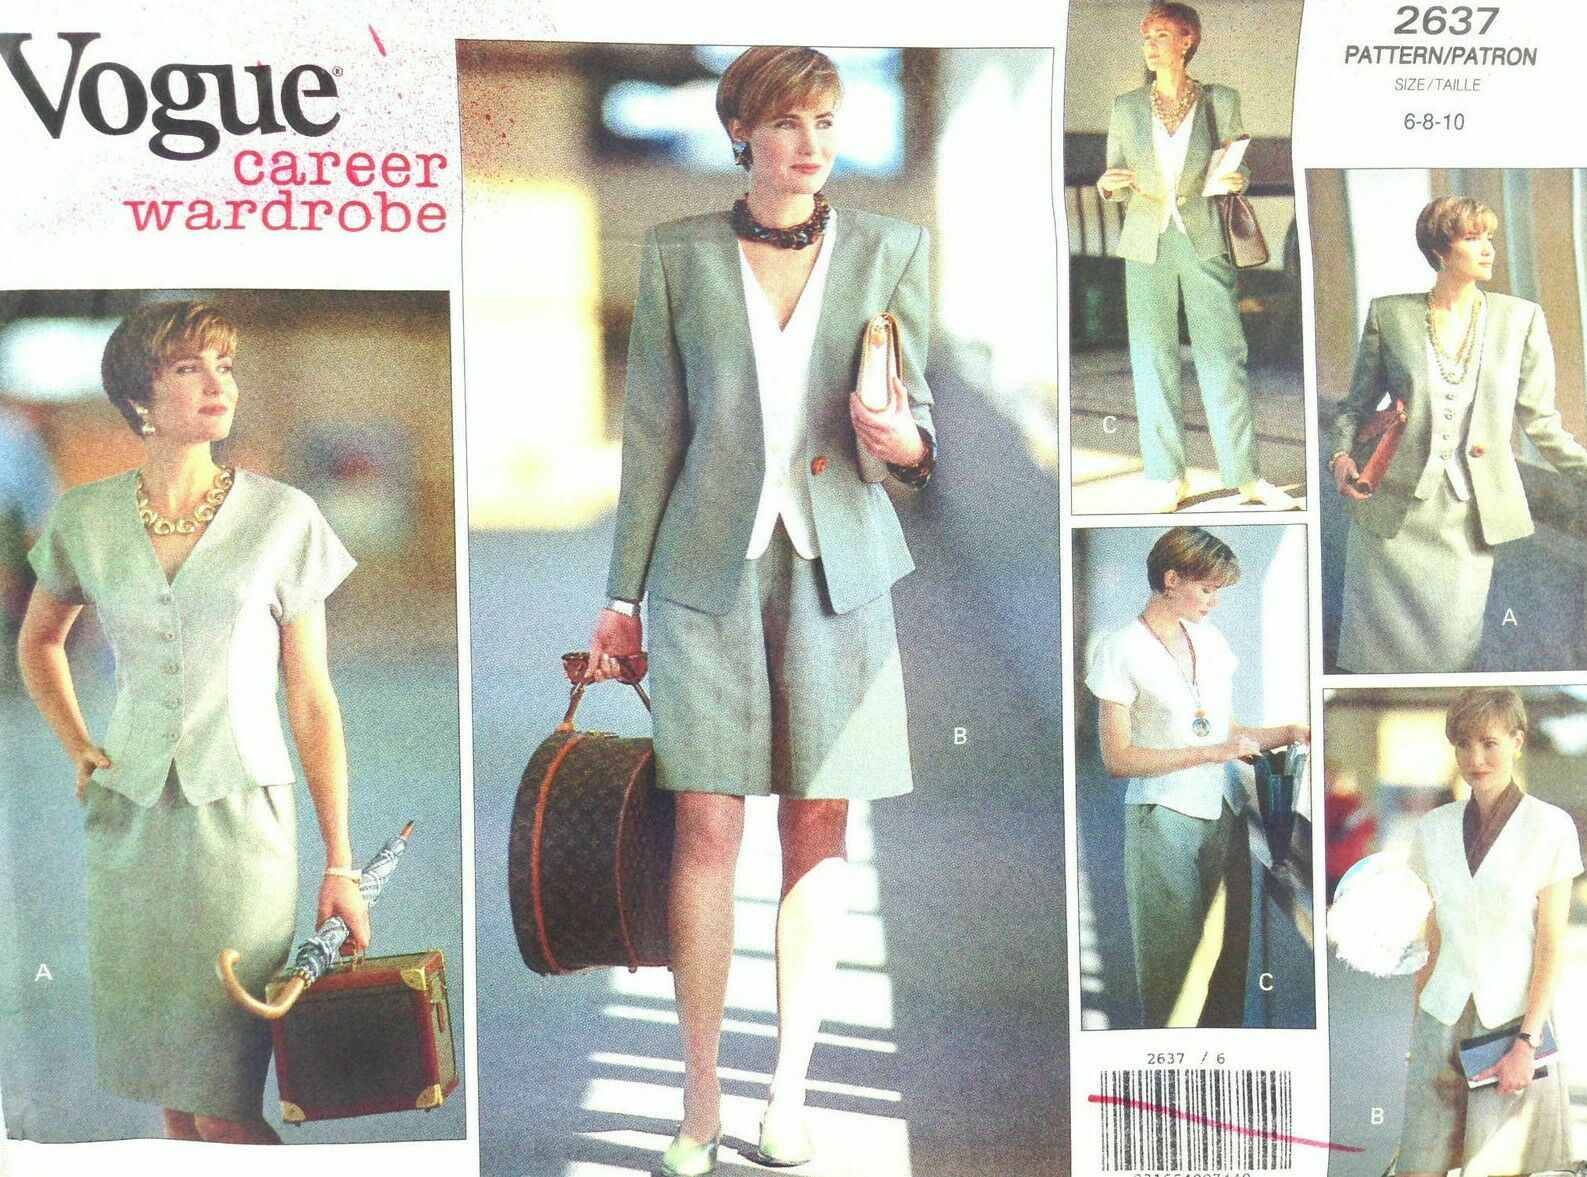 Primary image for Vogue Sewing Pattern 2637 Career Wardrobe Jacket Top Skirt Shorts Pant 6-10 VTG